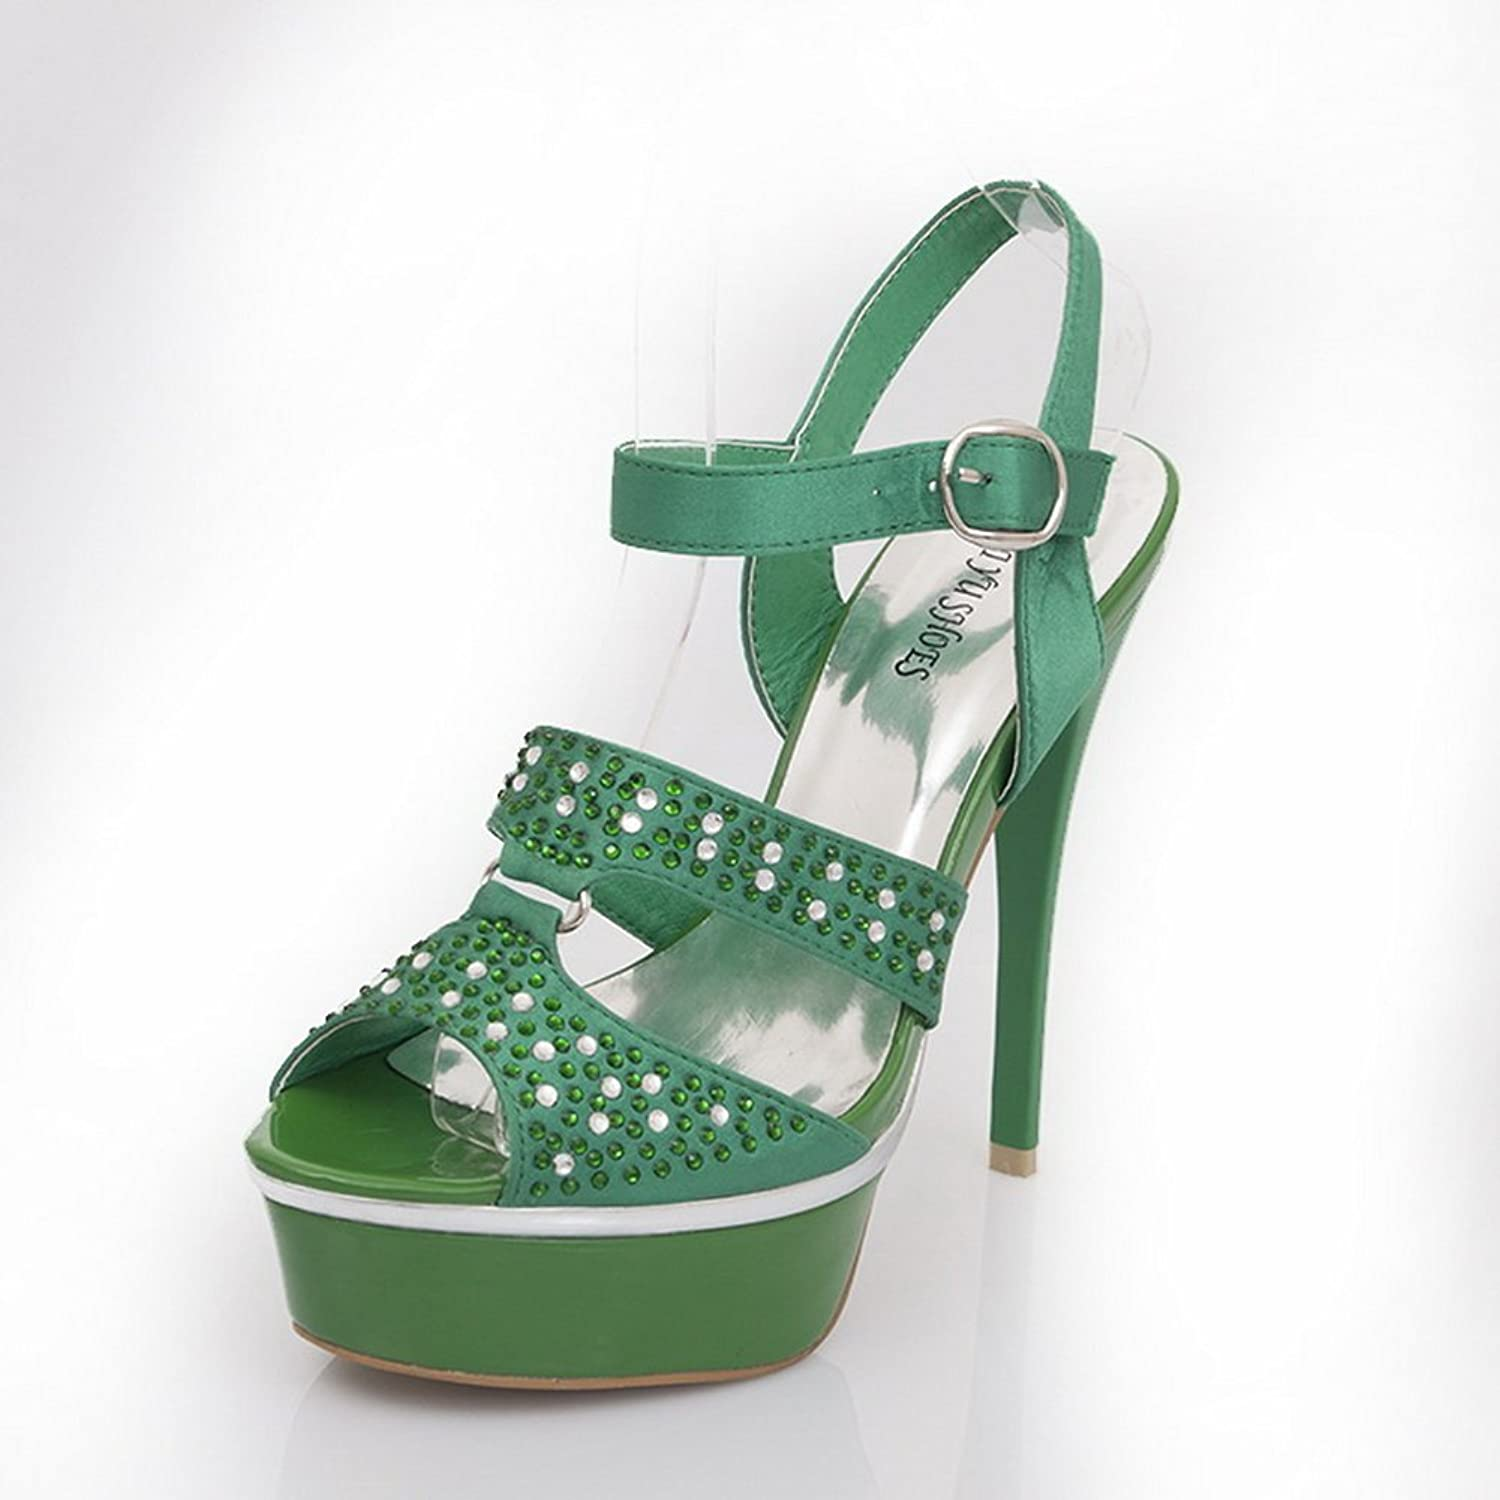 1TO9 Ladies Glass Diamond Fashion Green Soft Material Sandals - 7.5 B(M) US